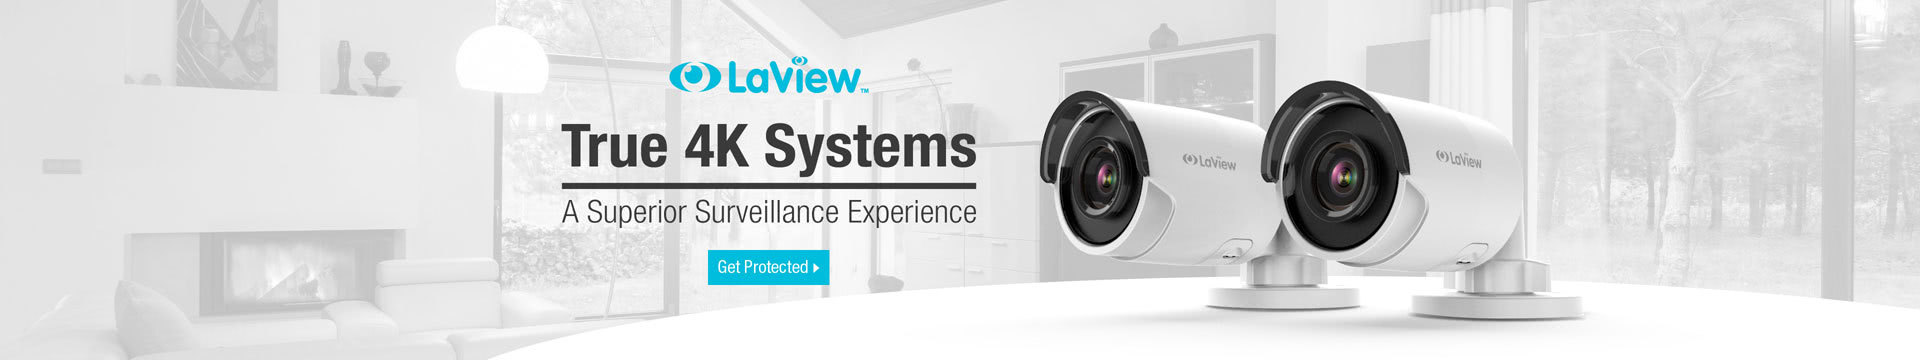 Security Cameras and Surveillance - Newegg.com